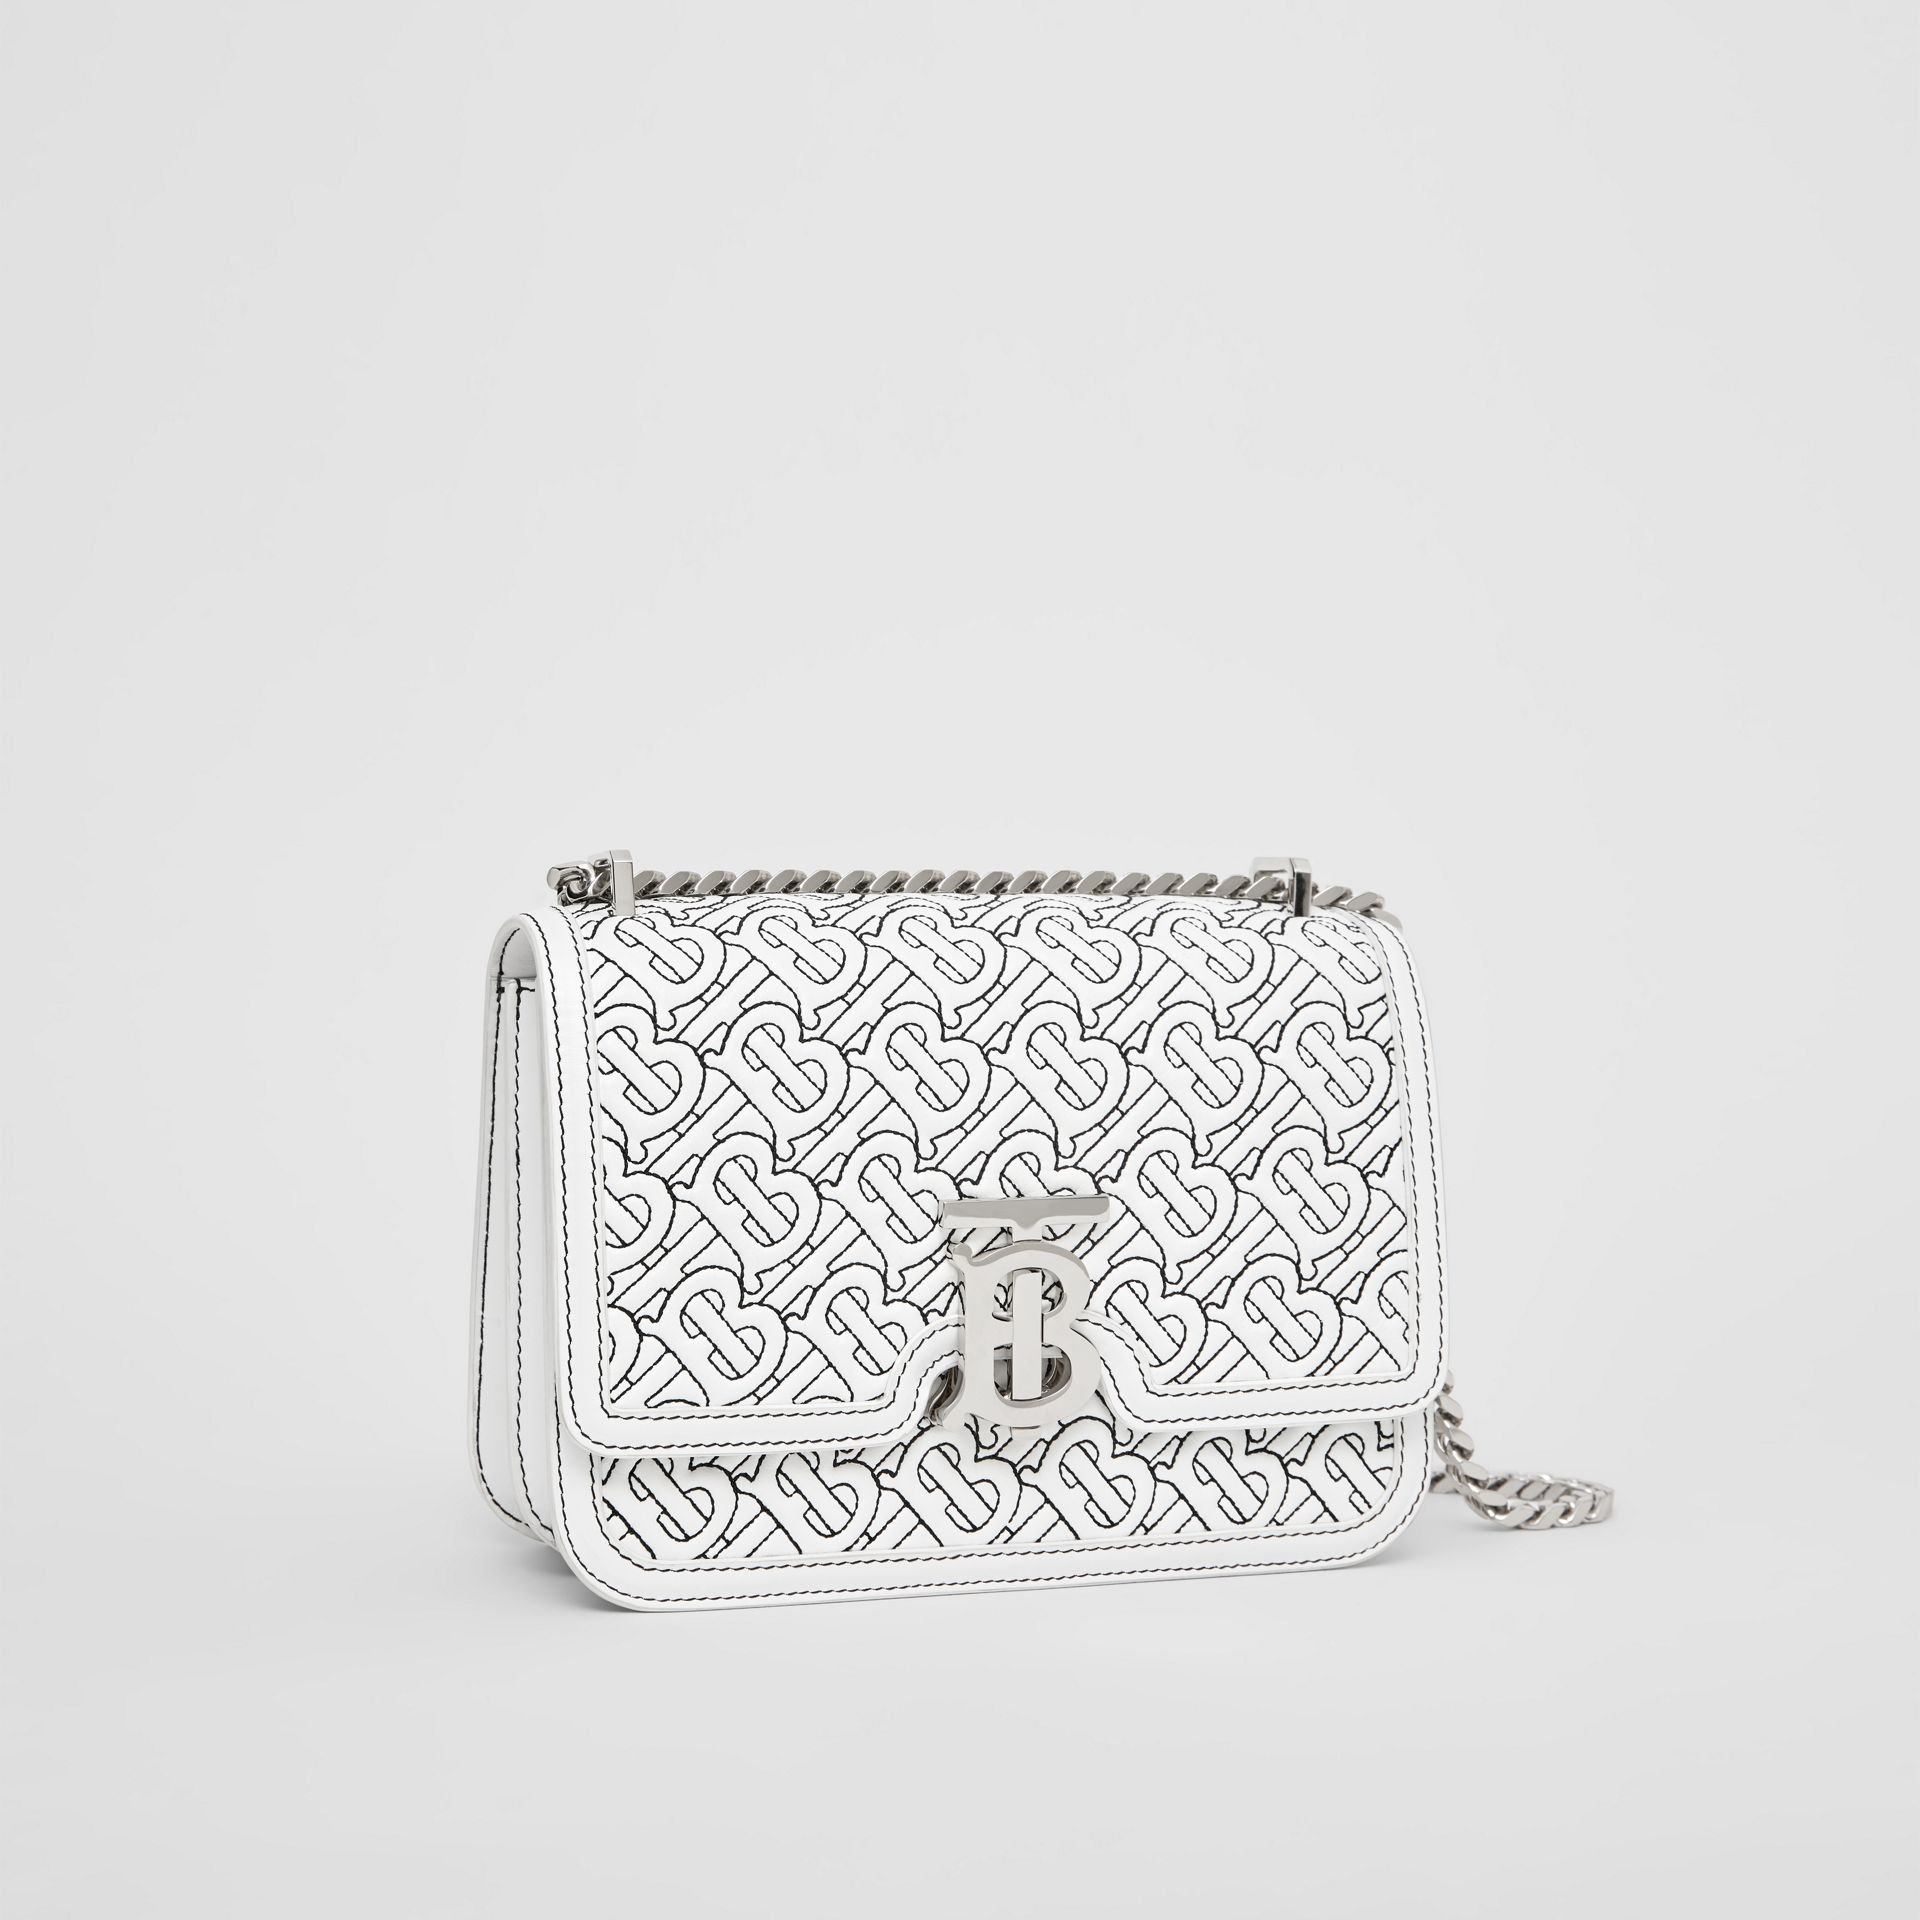 Small Quilted Monogram Lambskin TB Bag in Optic White - Women | Burberry - gallery image 6